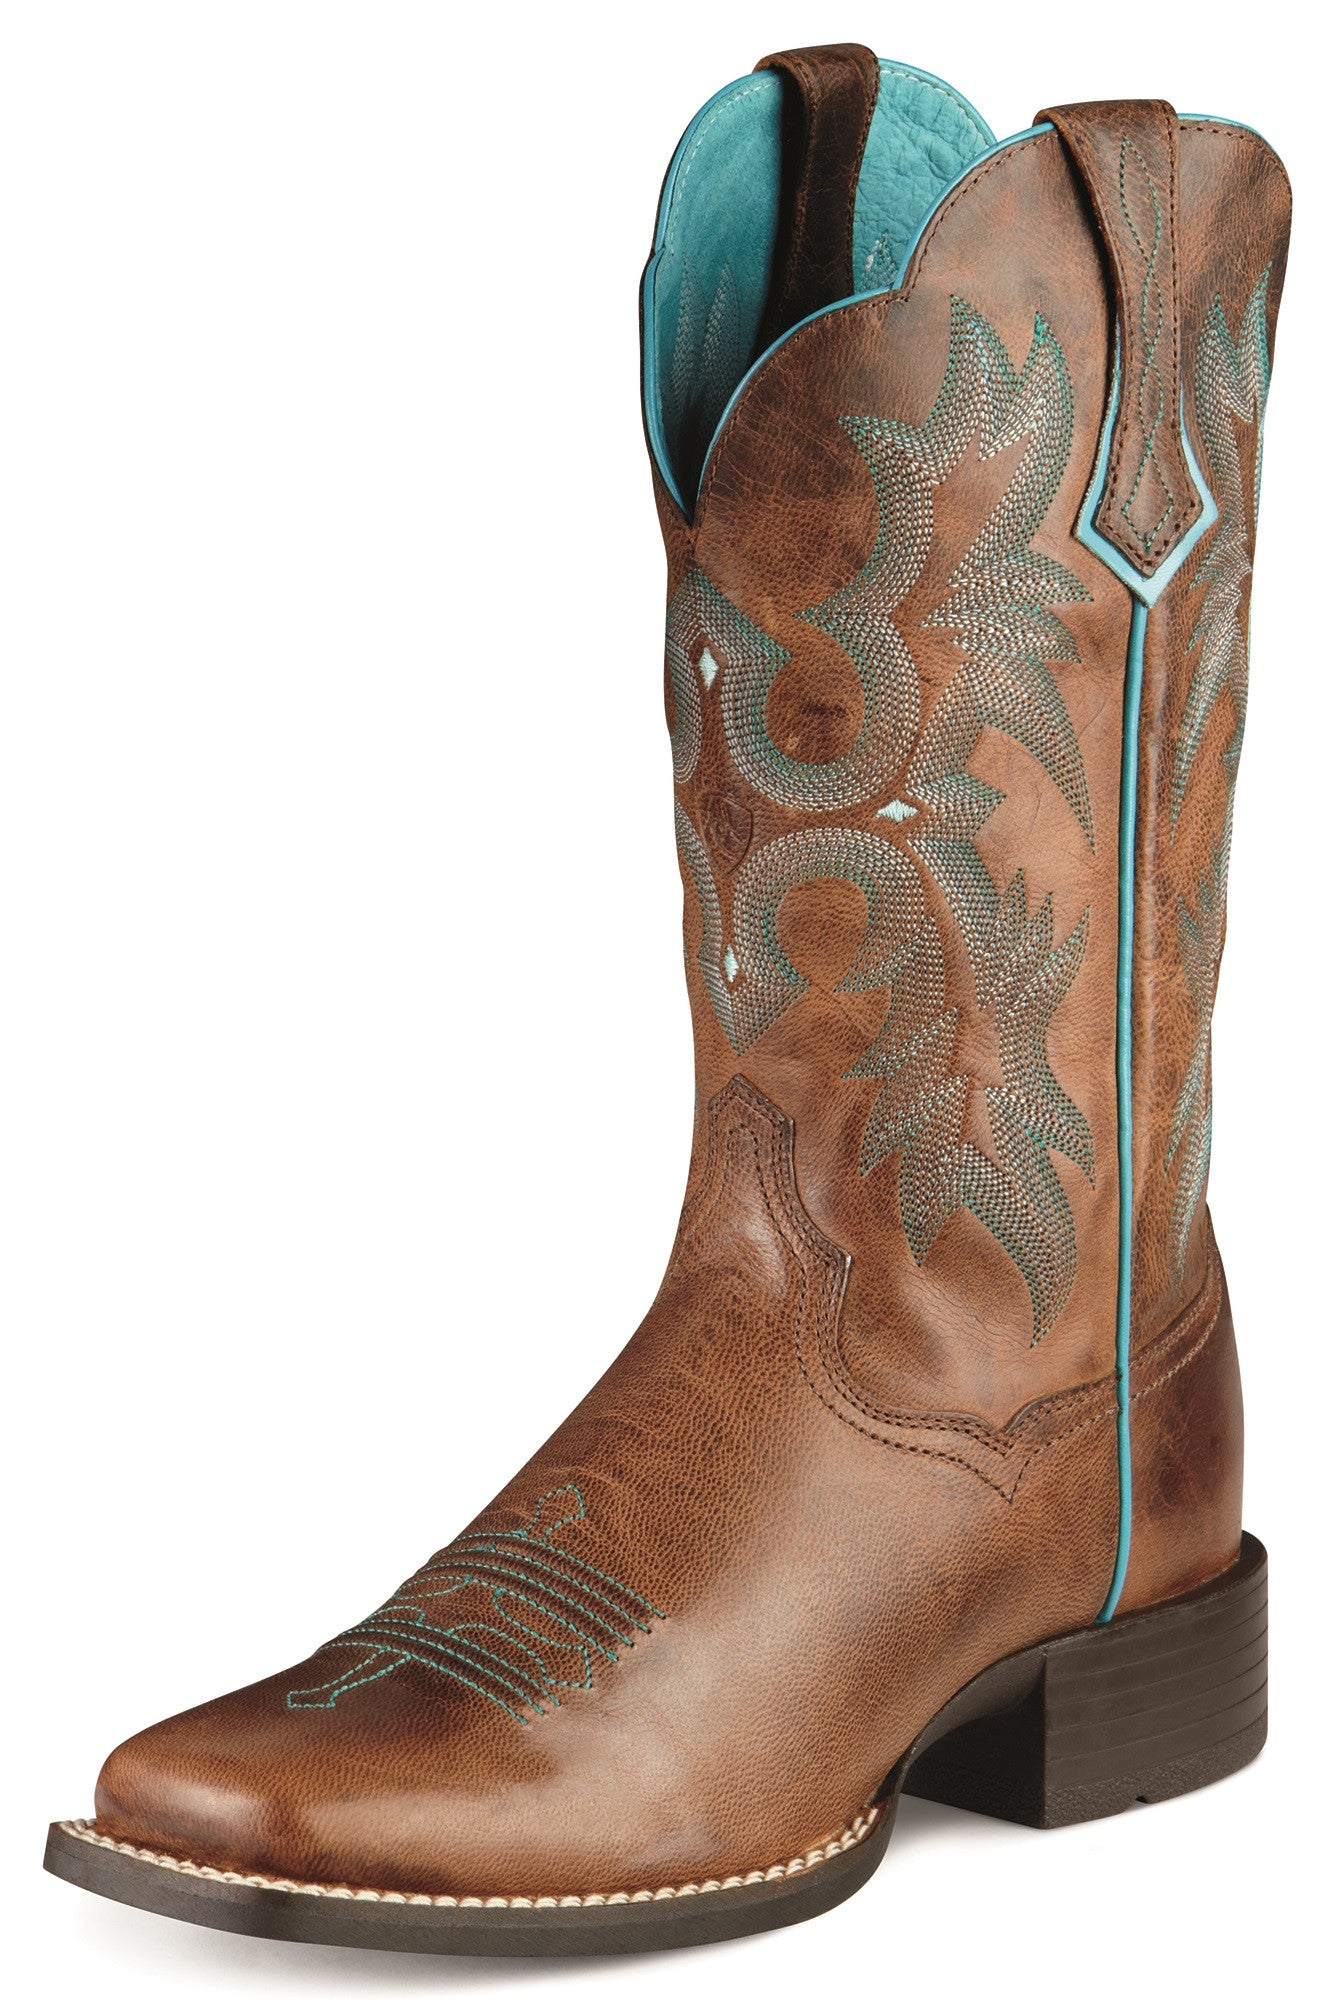 Women's Ariat Tombstone Boot #10008017